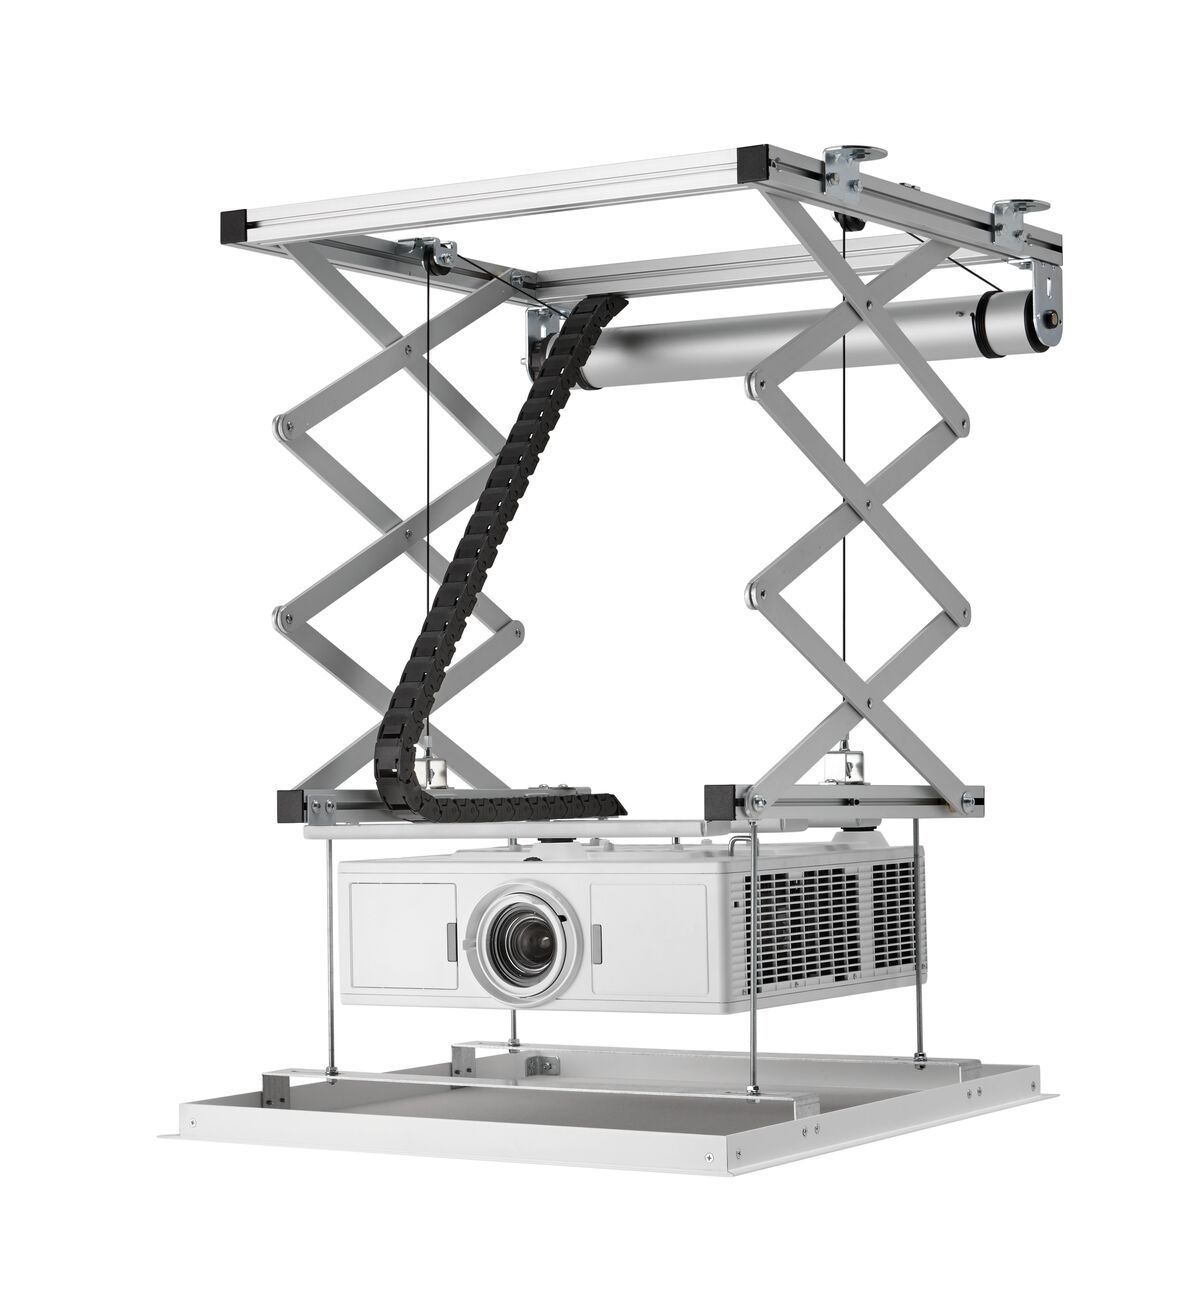 Vogel's PPL 2100 Projectorlift - Application